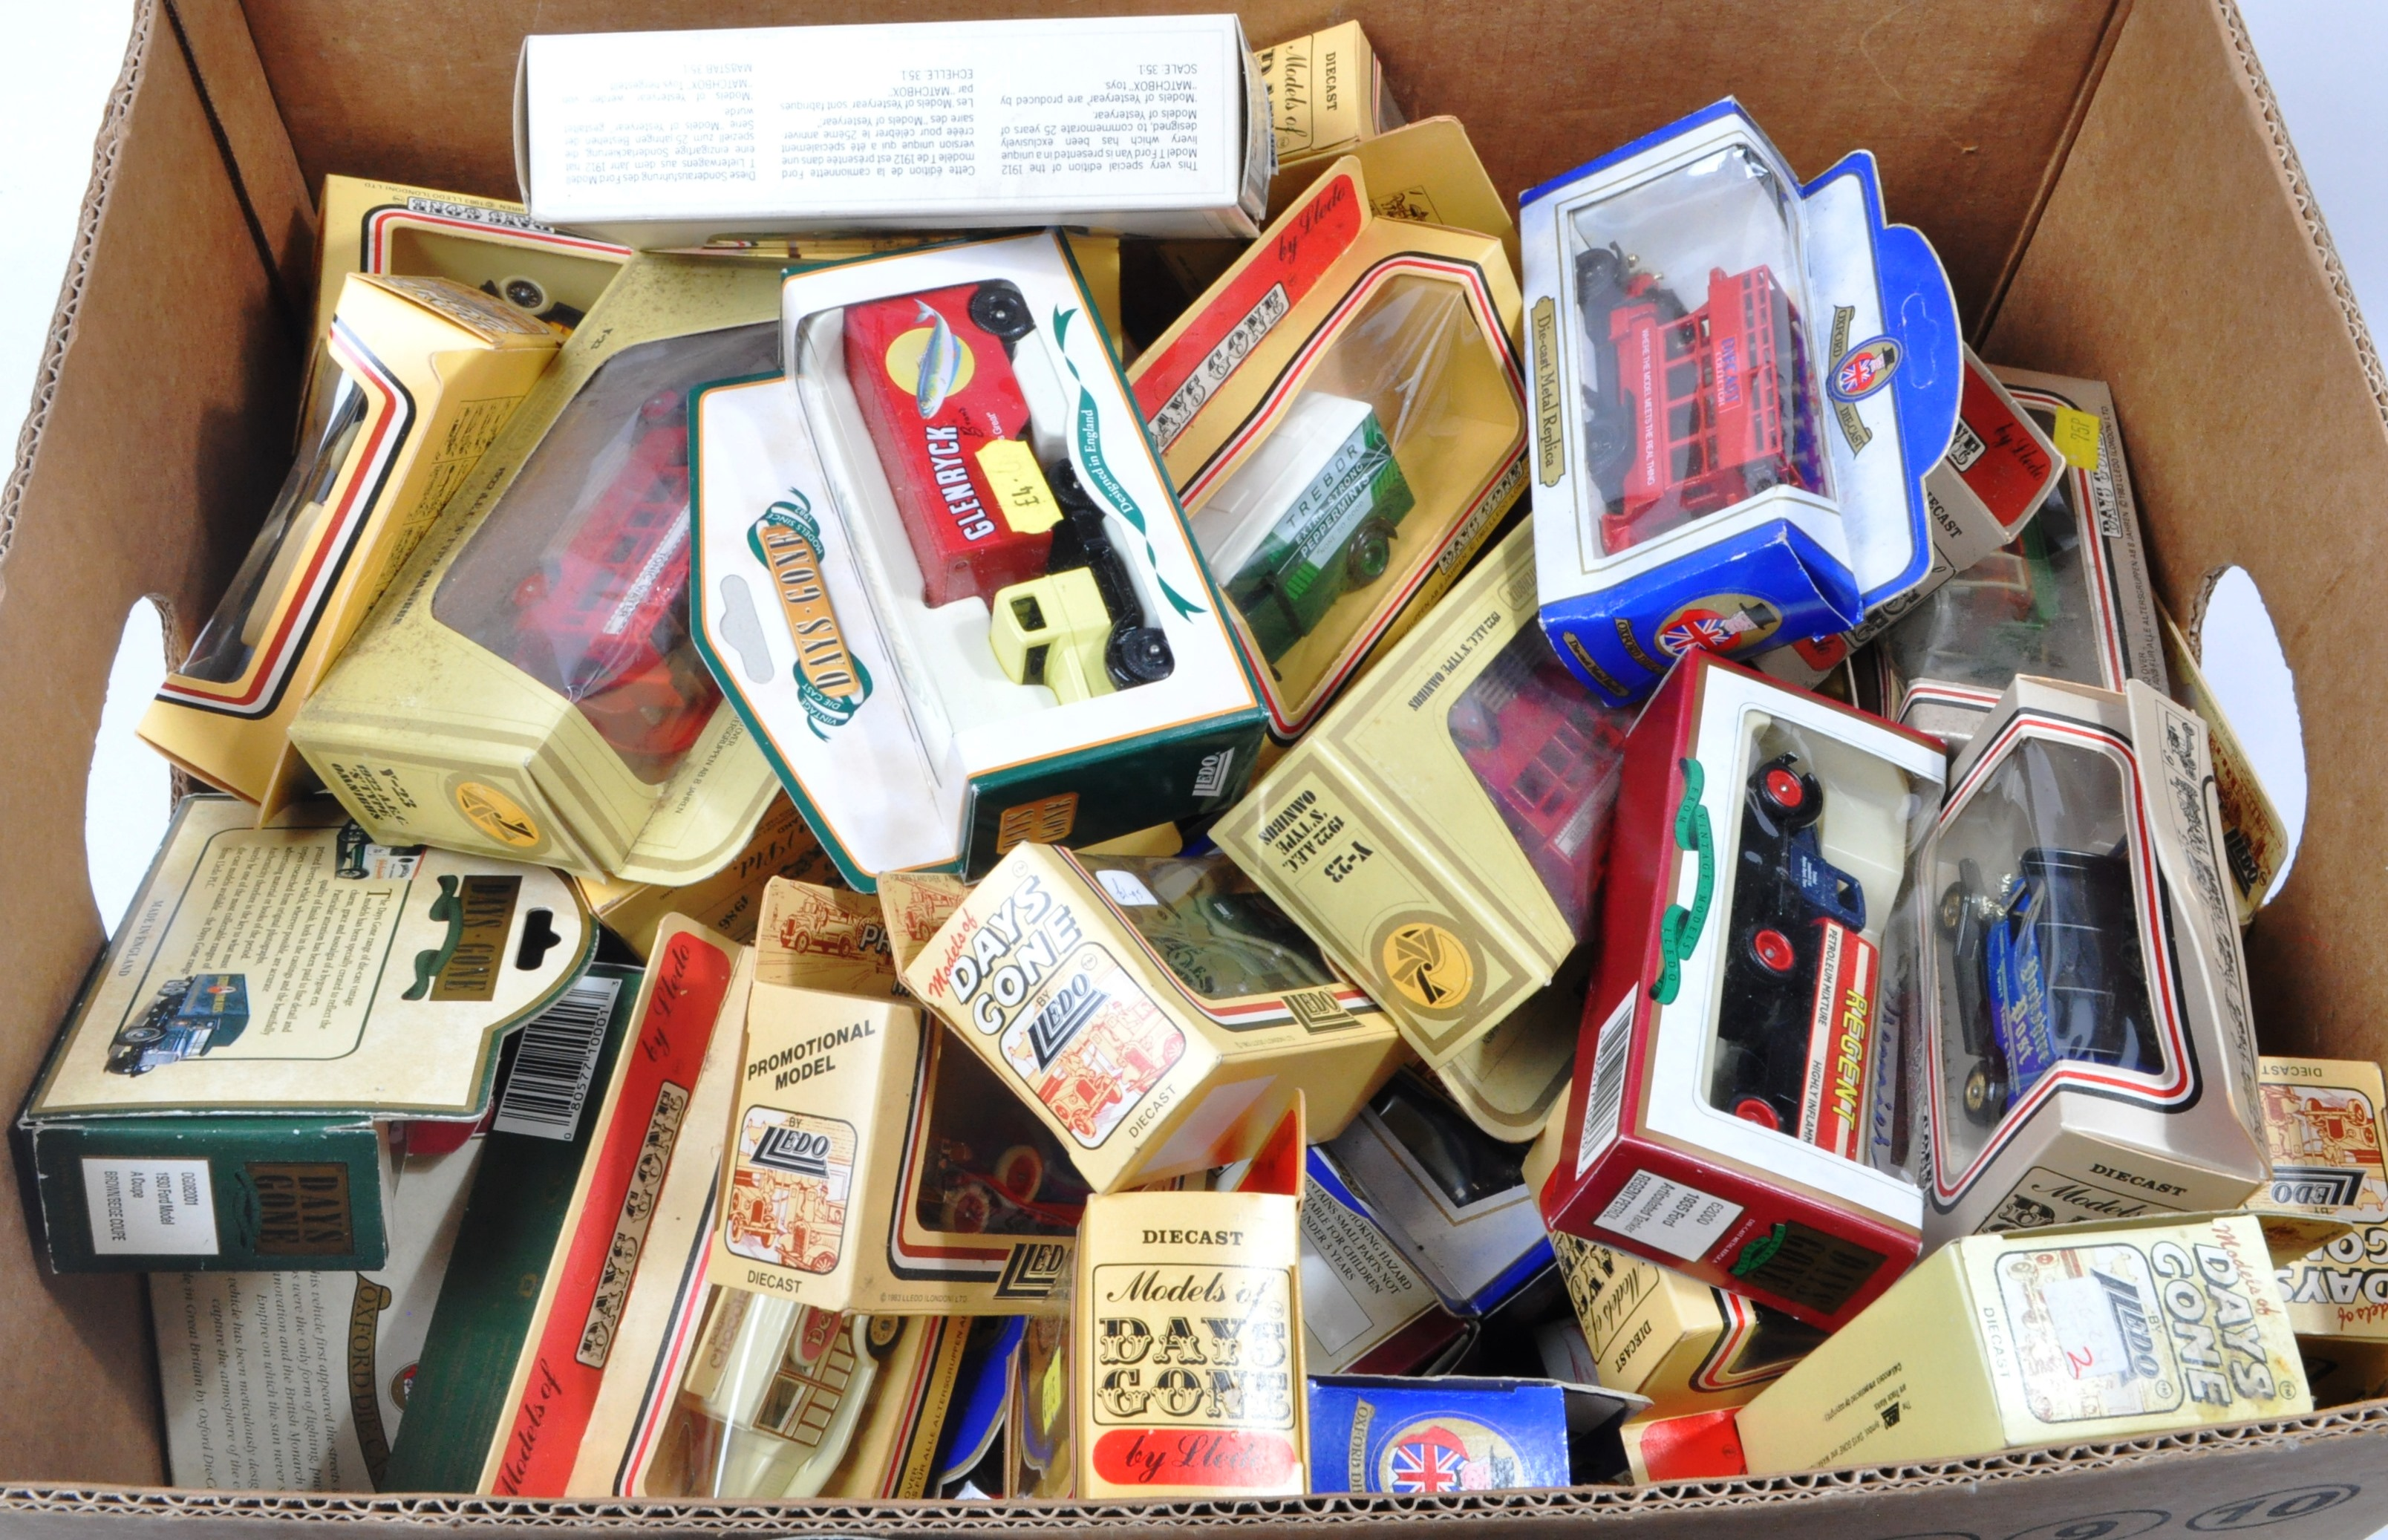 LARGE COLLECTION OF ASSORTED BOXED DIECAST - LLEDO, MATCHBOX - Image 4 of 4